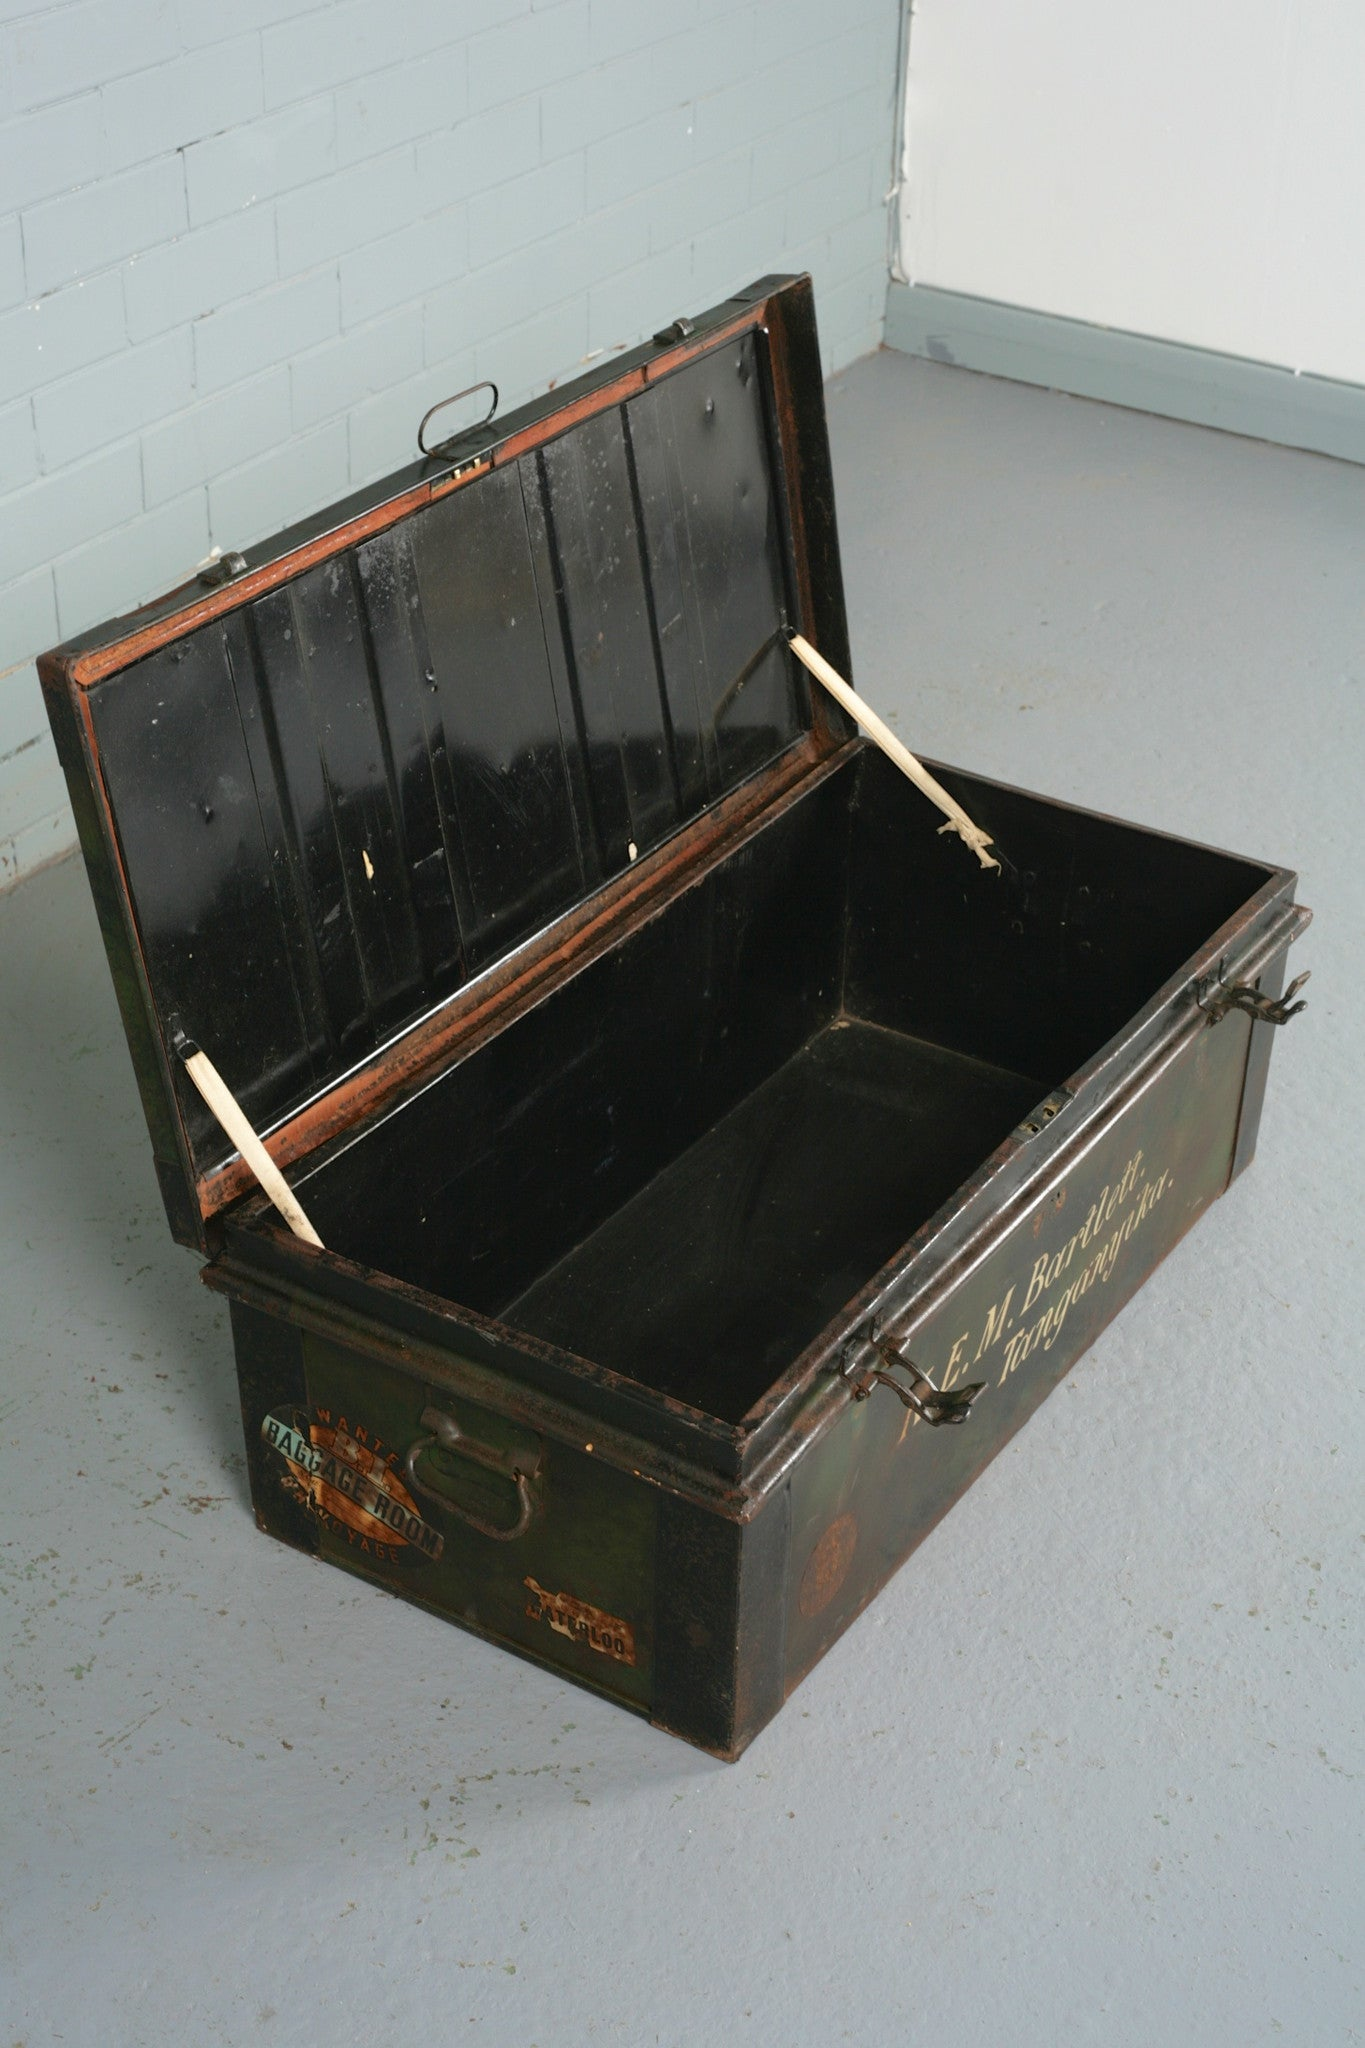 Vintage tin trunk for sale at Industrious Interiors, an online vintage furniture and homeware store based in Nottingham, England.